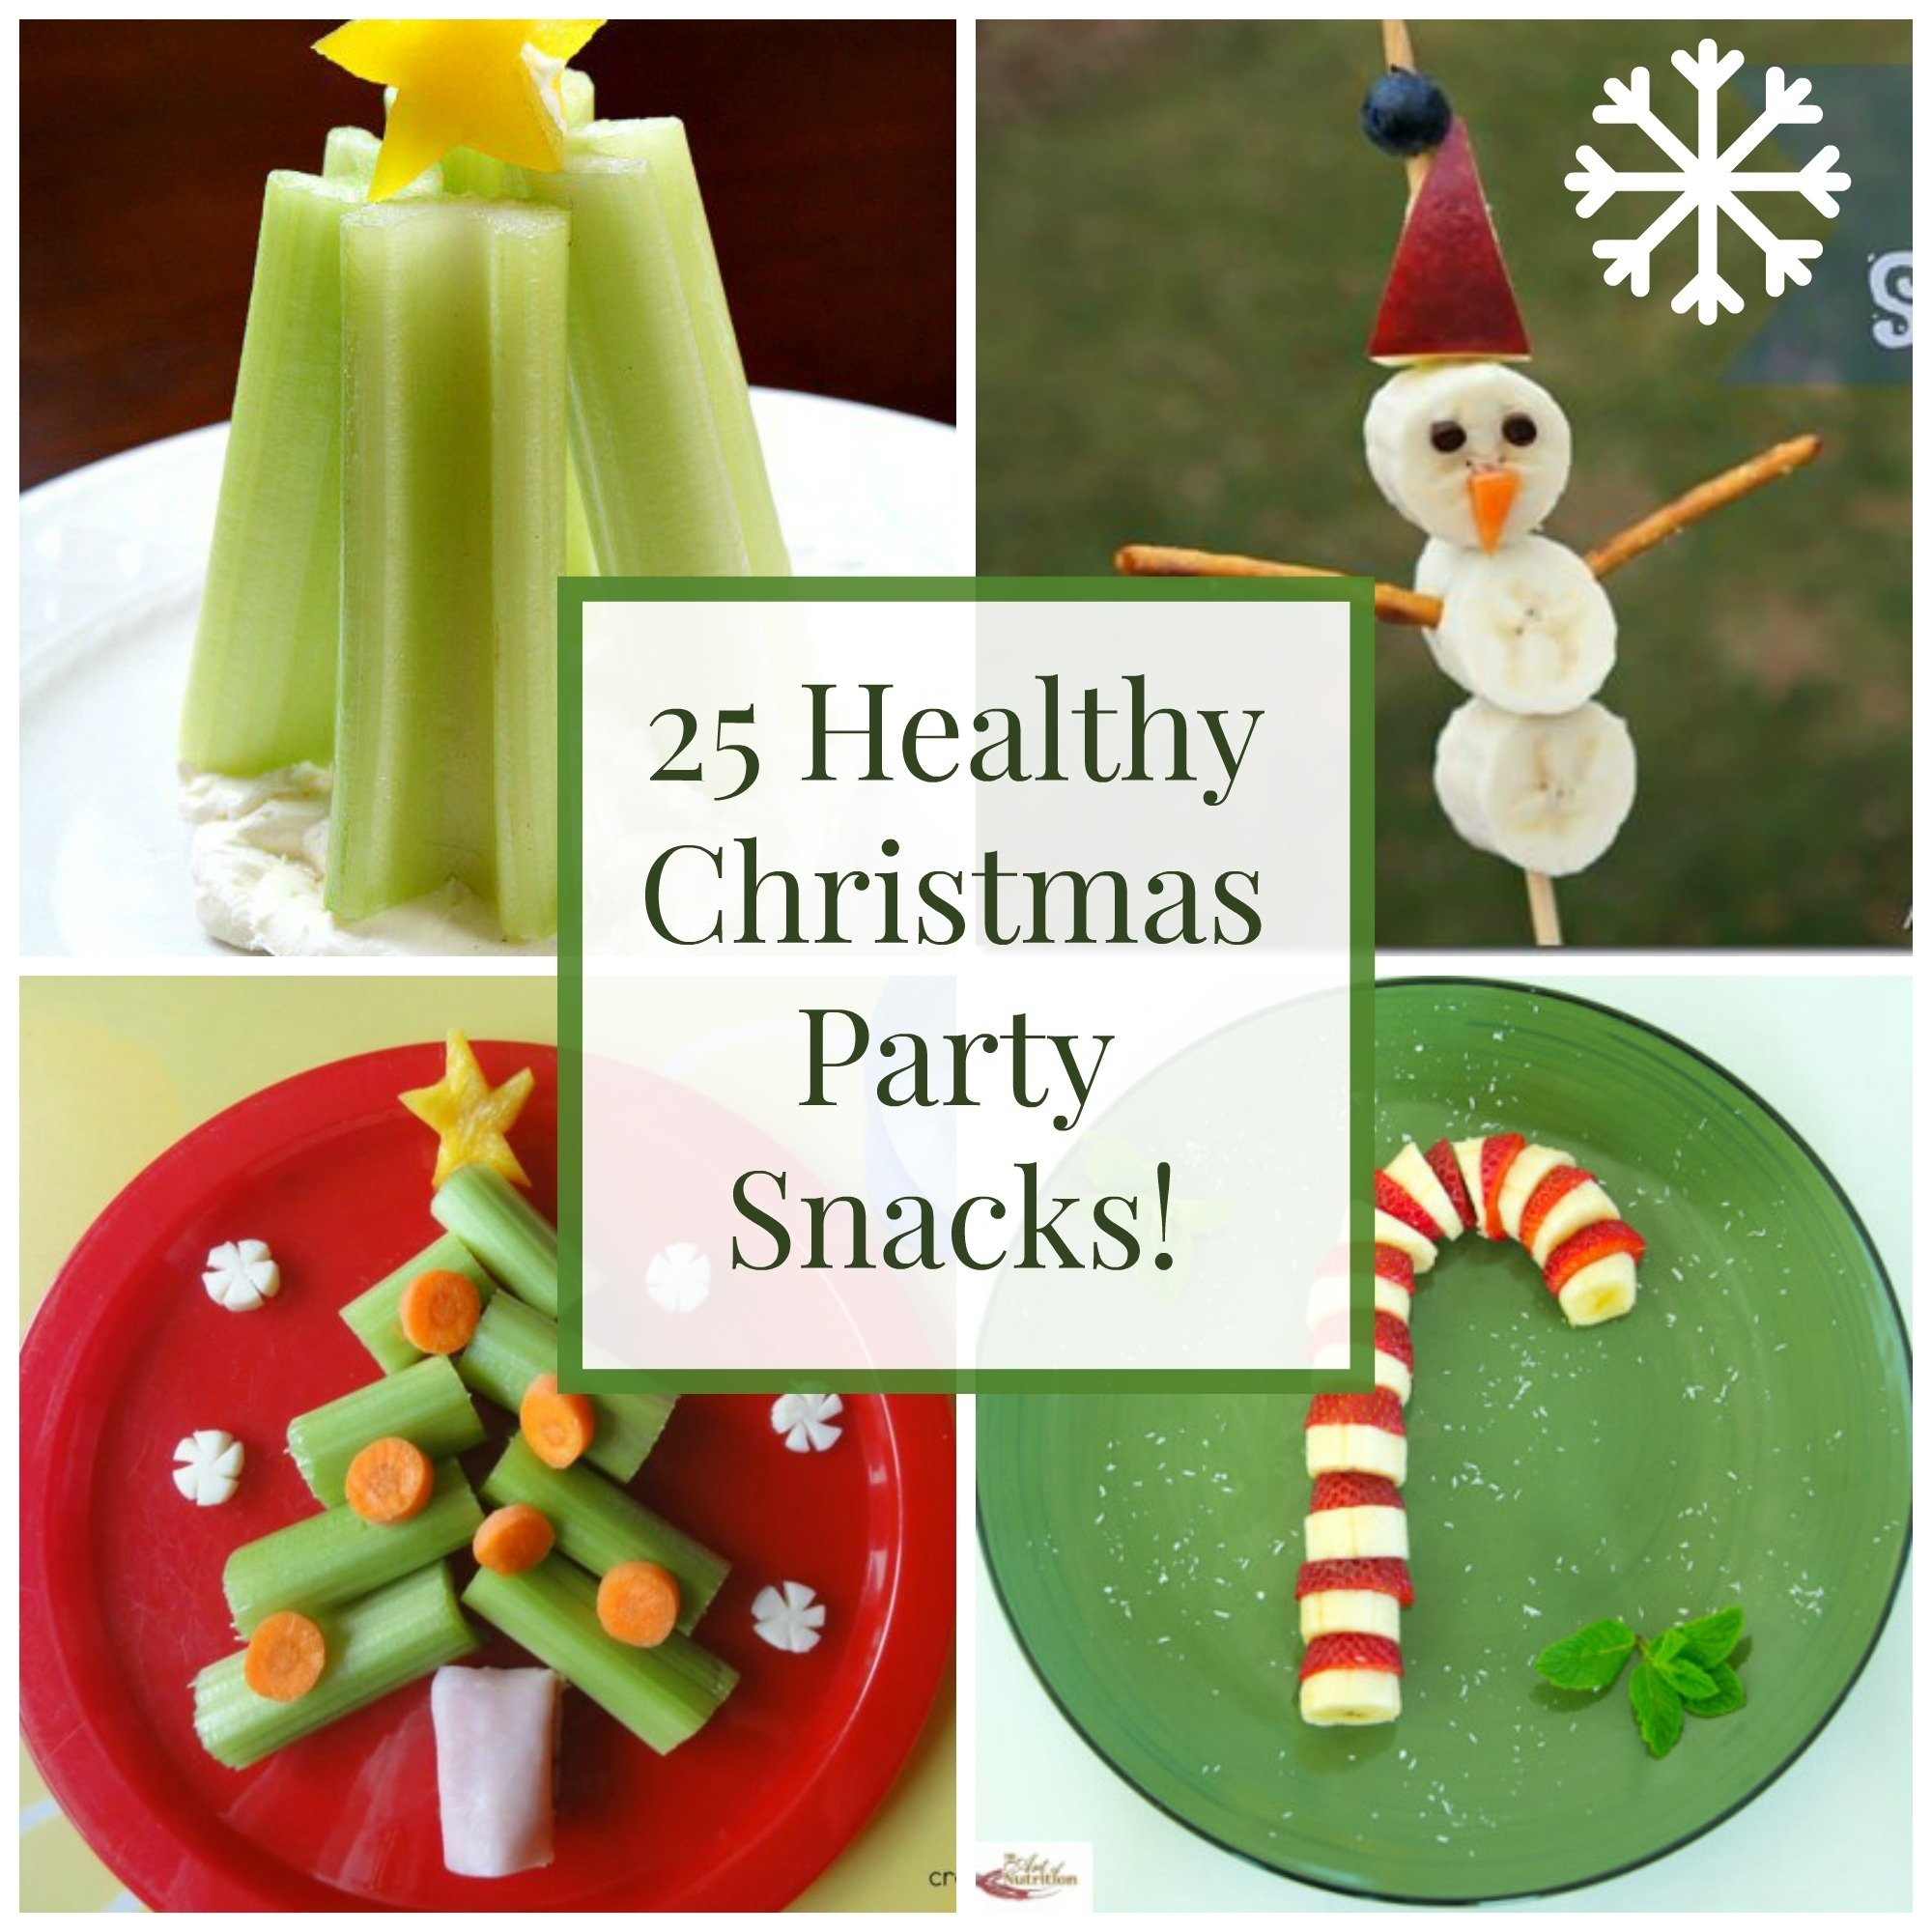 10 Best Christmas Snack Ideas For Kids 25 healthy christmas snacks and party foods healthy ideas for kids 2 2020